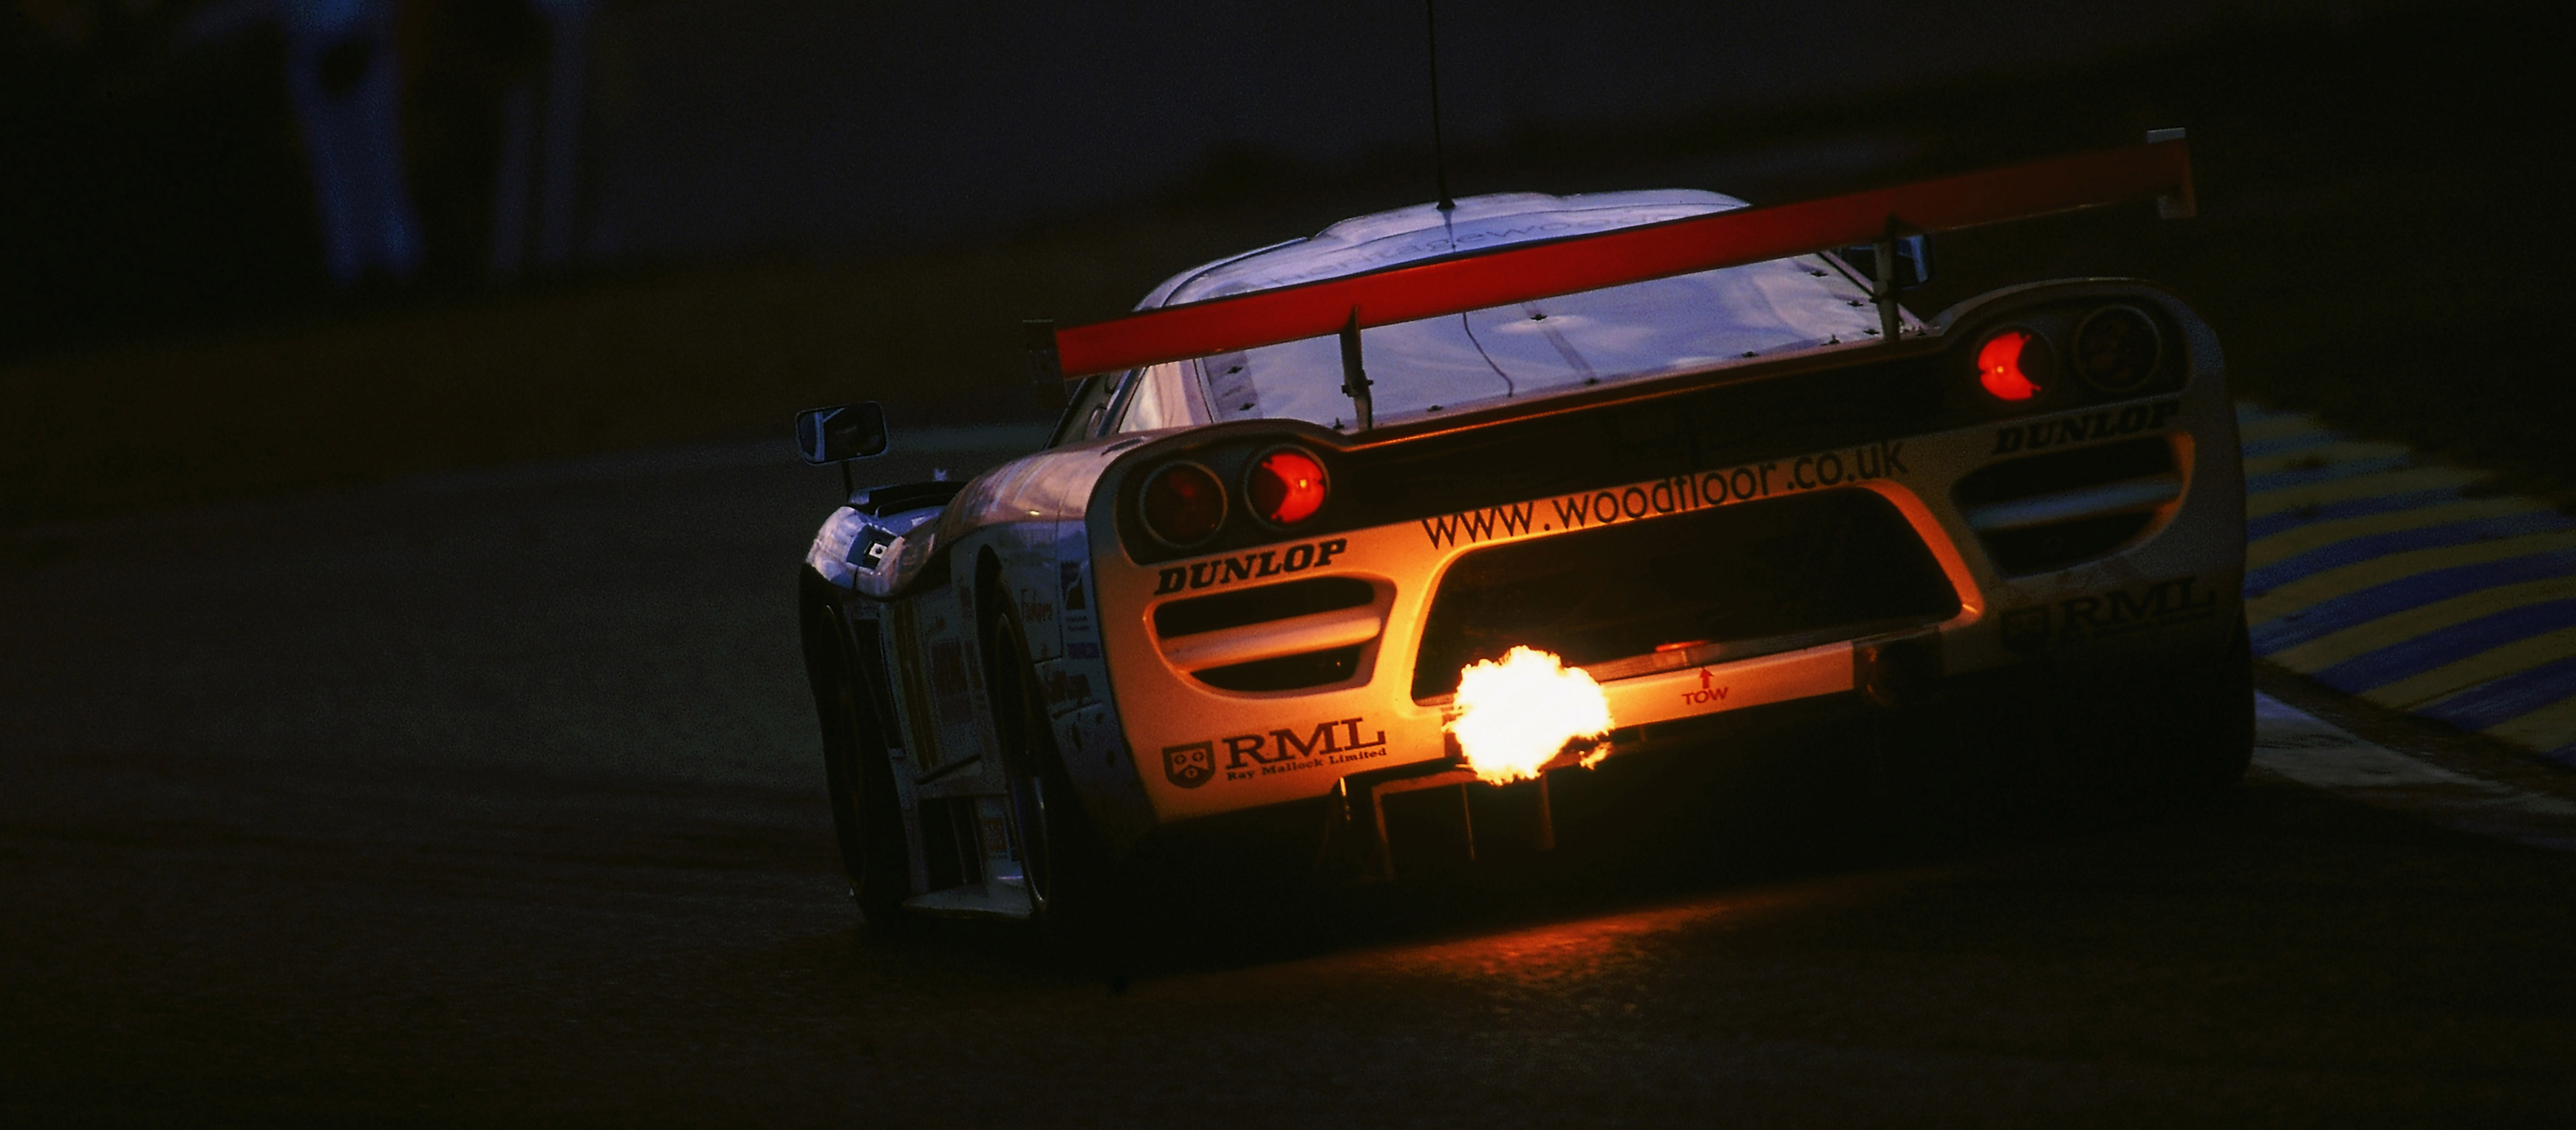 Pictured: A Saleen S7R racer campaigned by RML at the 24 Hours of Le Mans in 2001. Note the RML sticker illuminated by the car's flames.